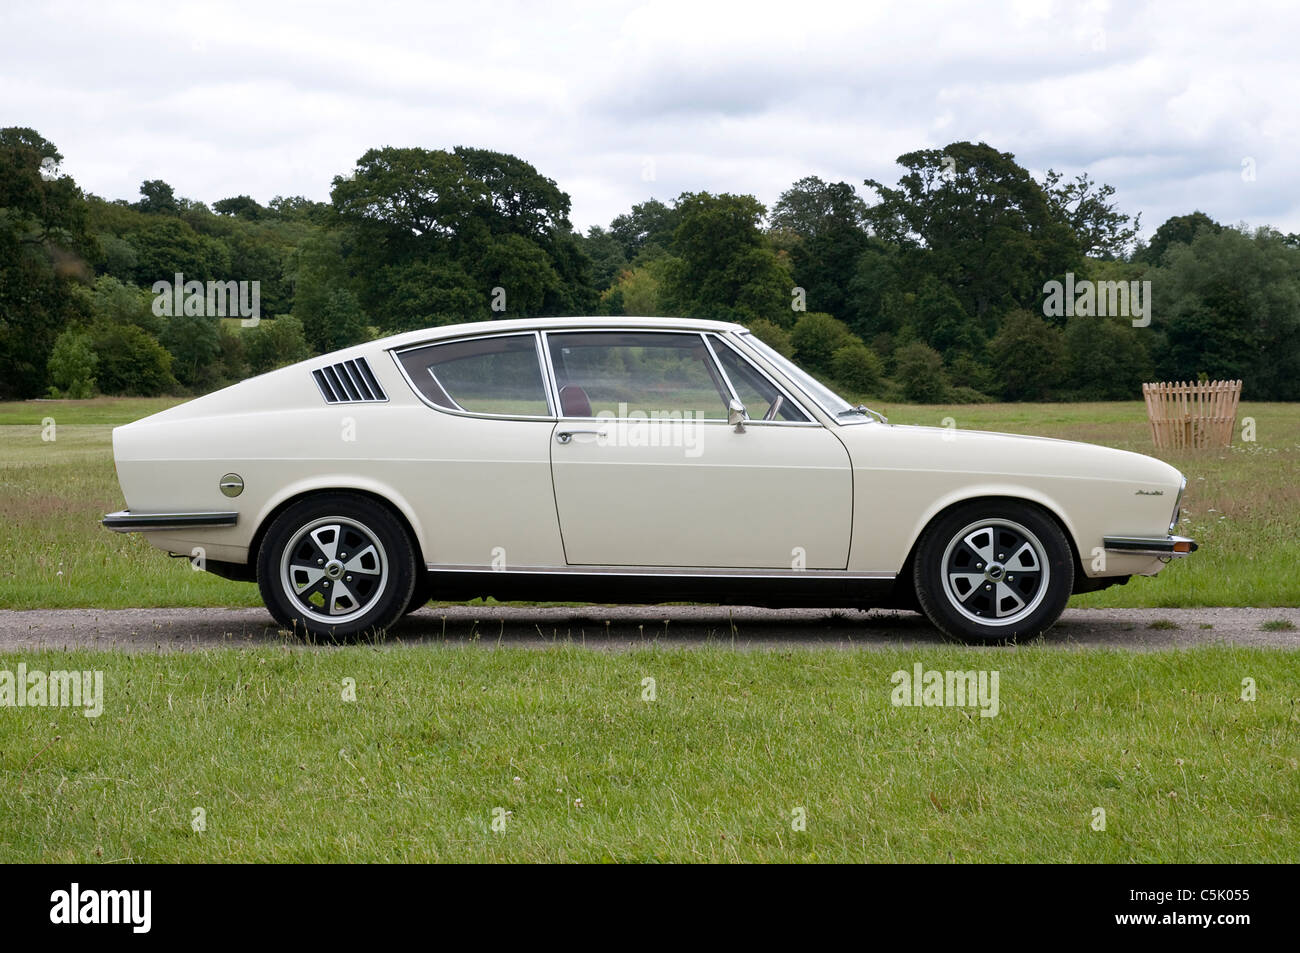 Audi 100 Coupe S 1973 - Stock Image